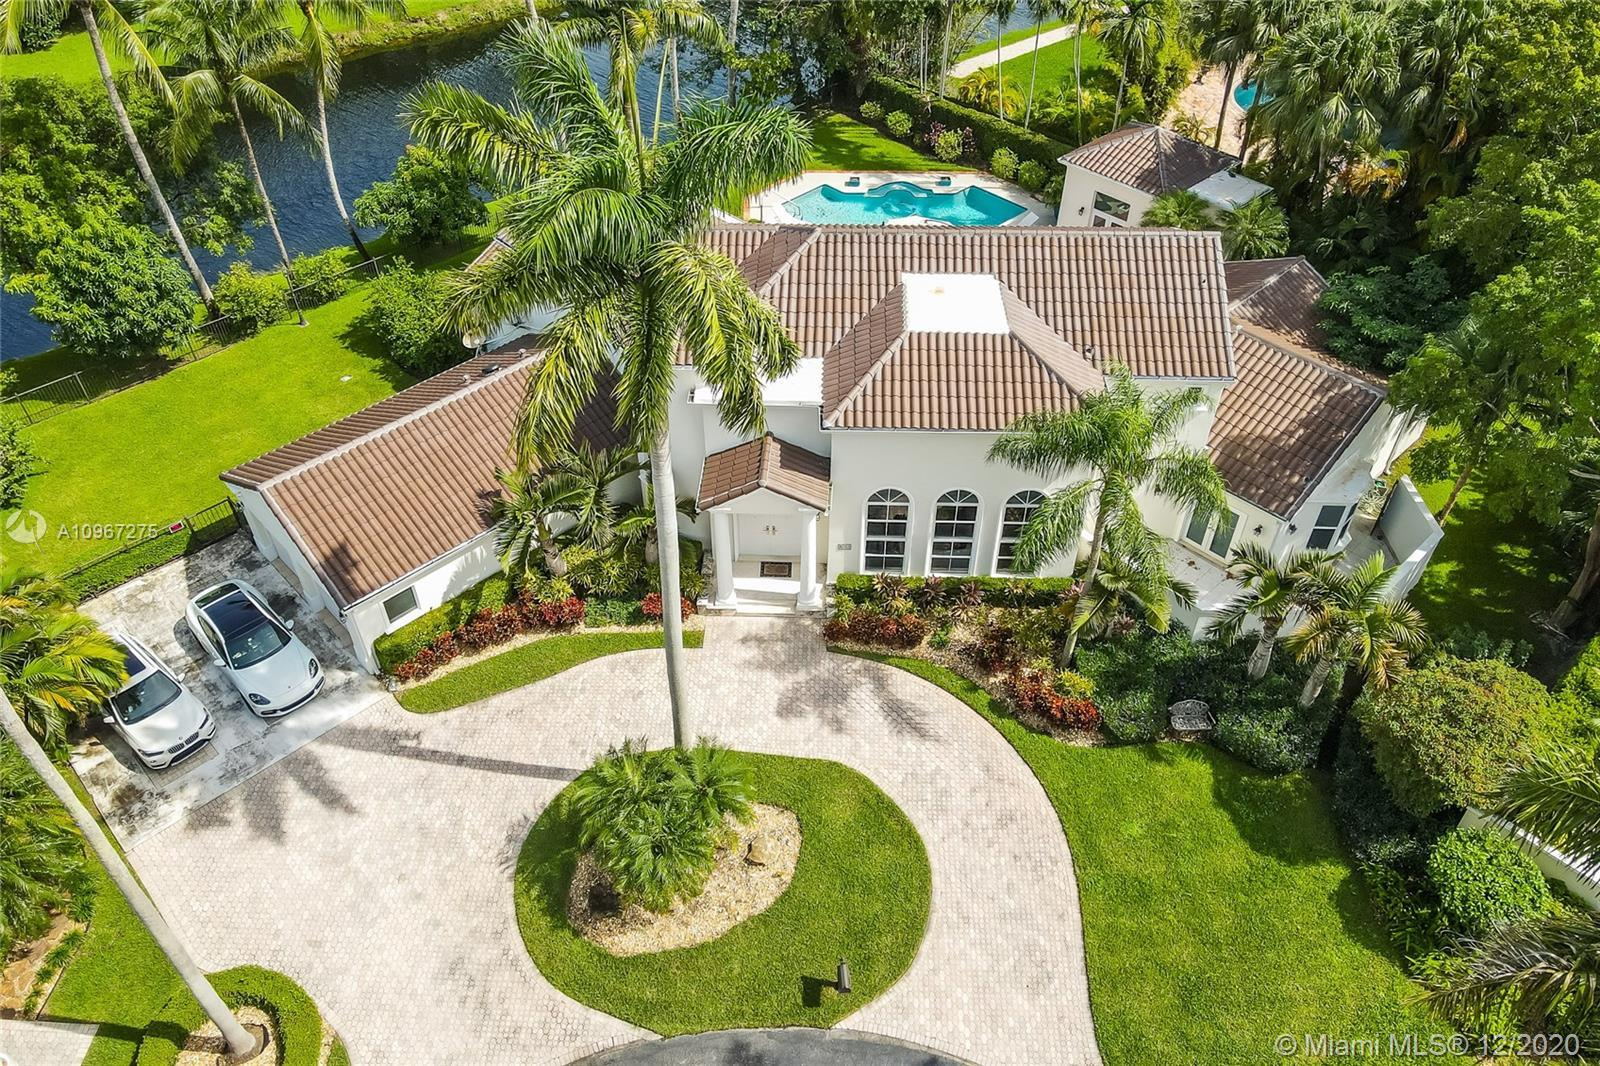 Fall in love with this north Pinecrest home located in a private gated community of only 11 properti